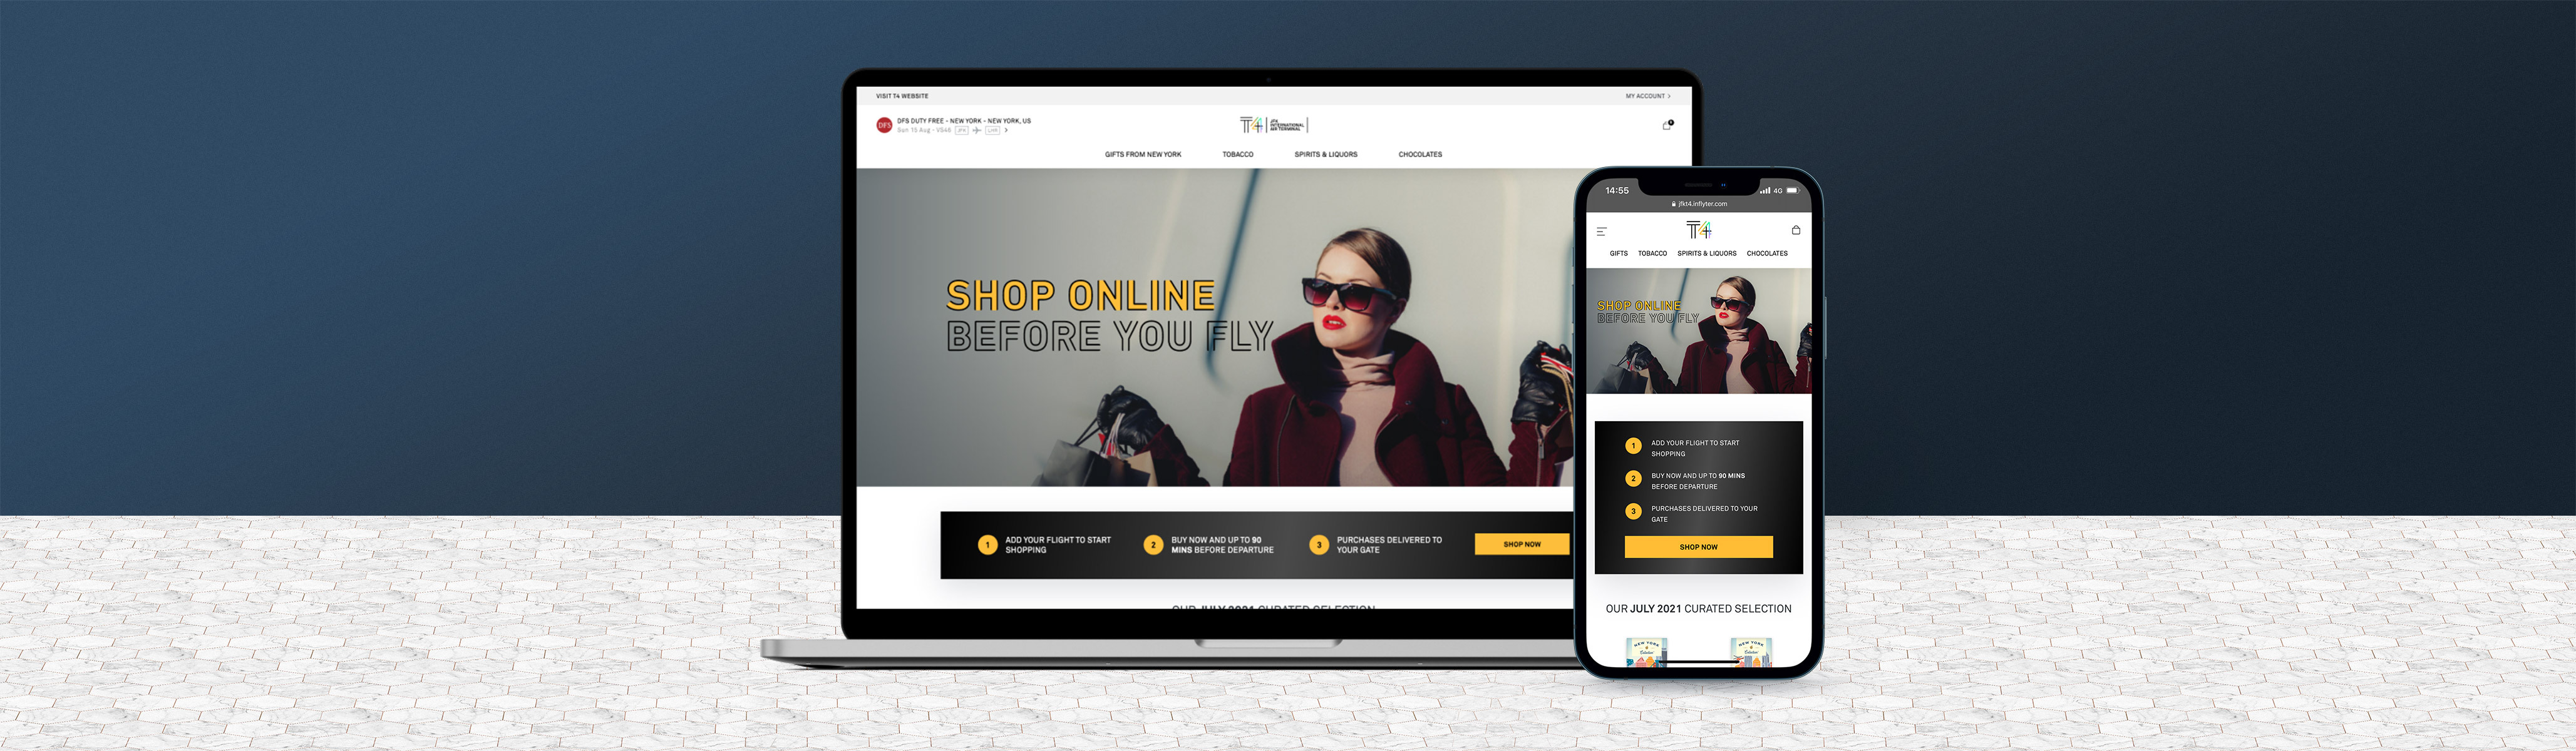 Inflyter launches digital duty free marketplace for JFK International Airport.